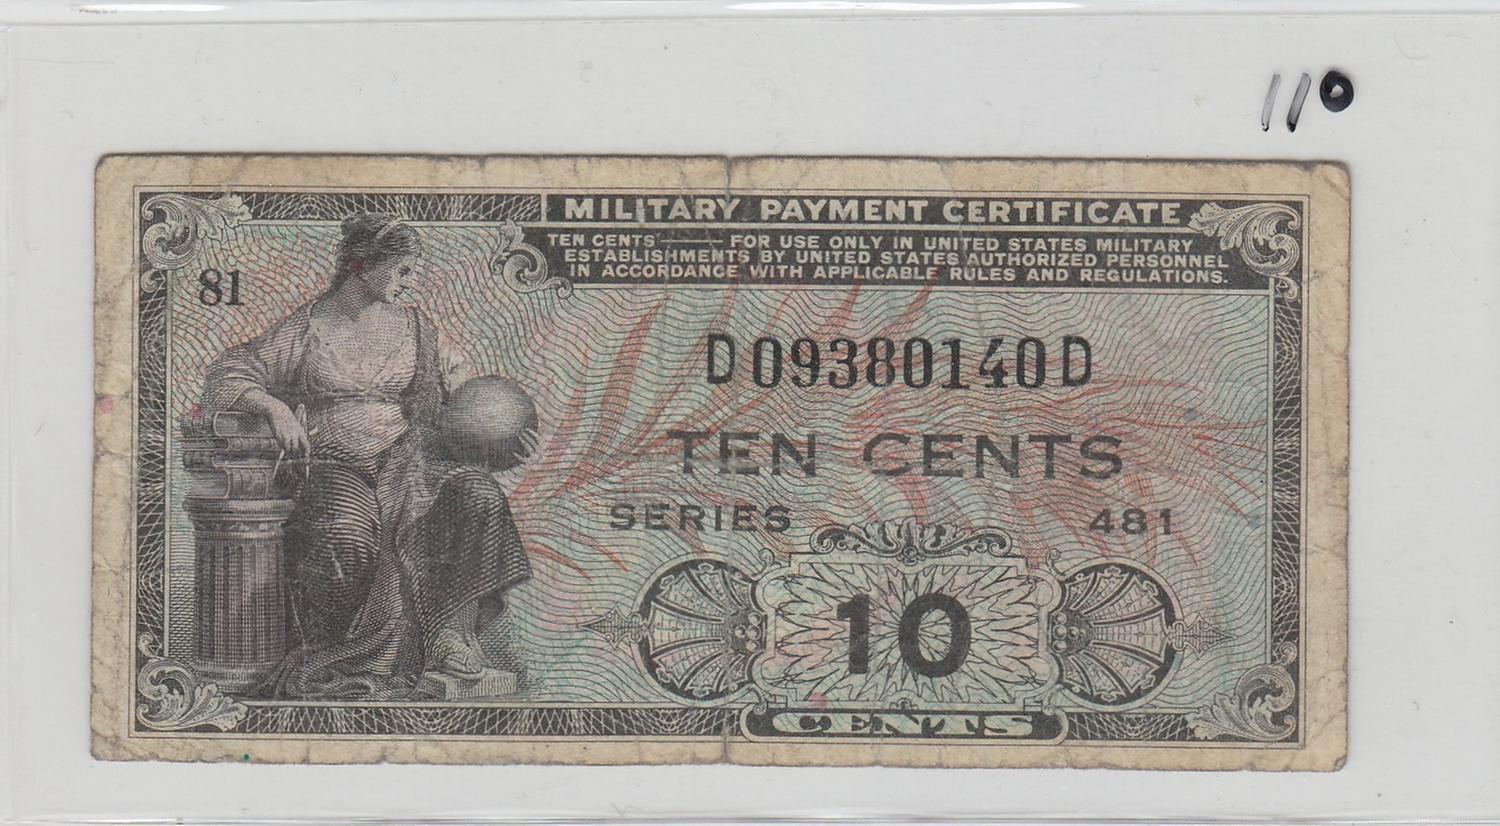 Military Payment Certificate Series 481 10 Cent